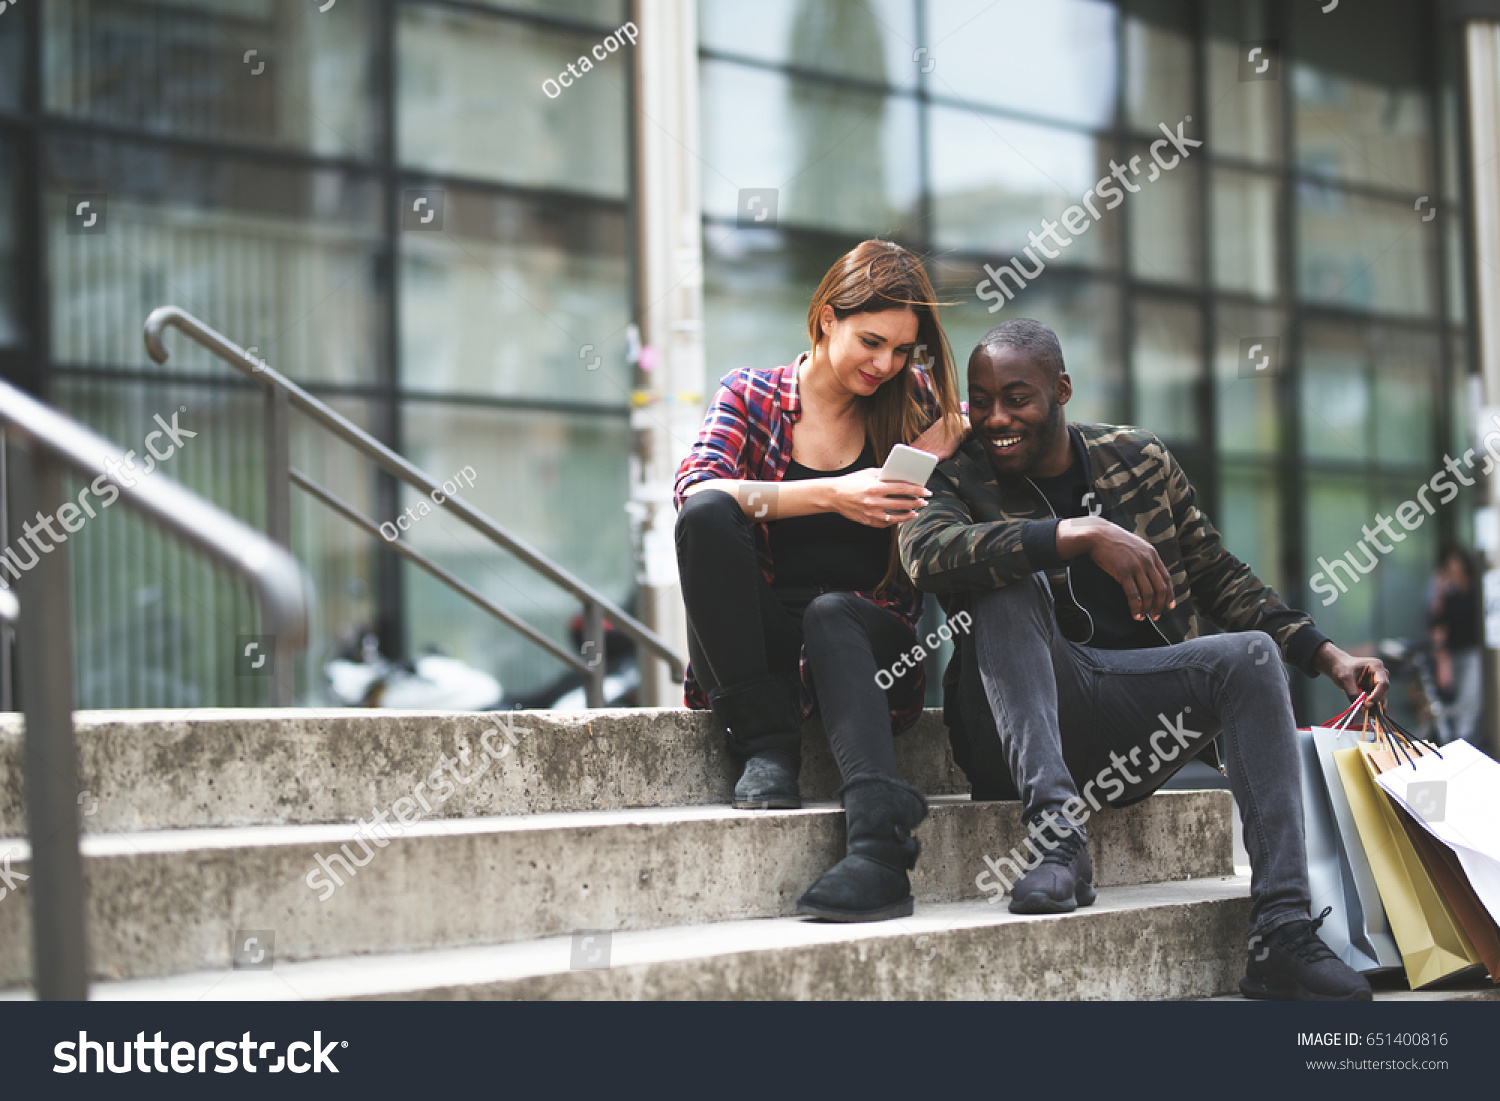 In nature s garb stairwell interracial